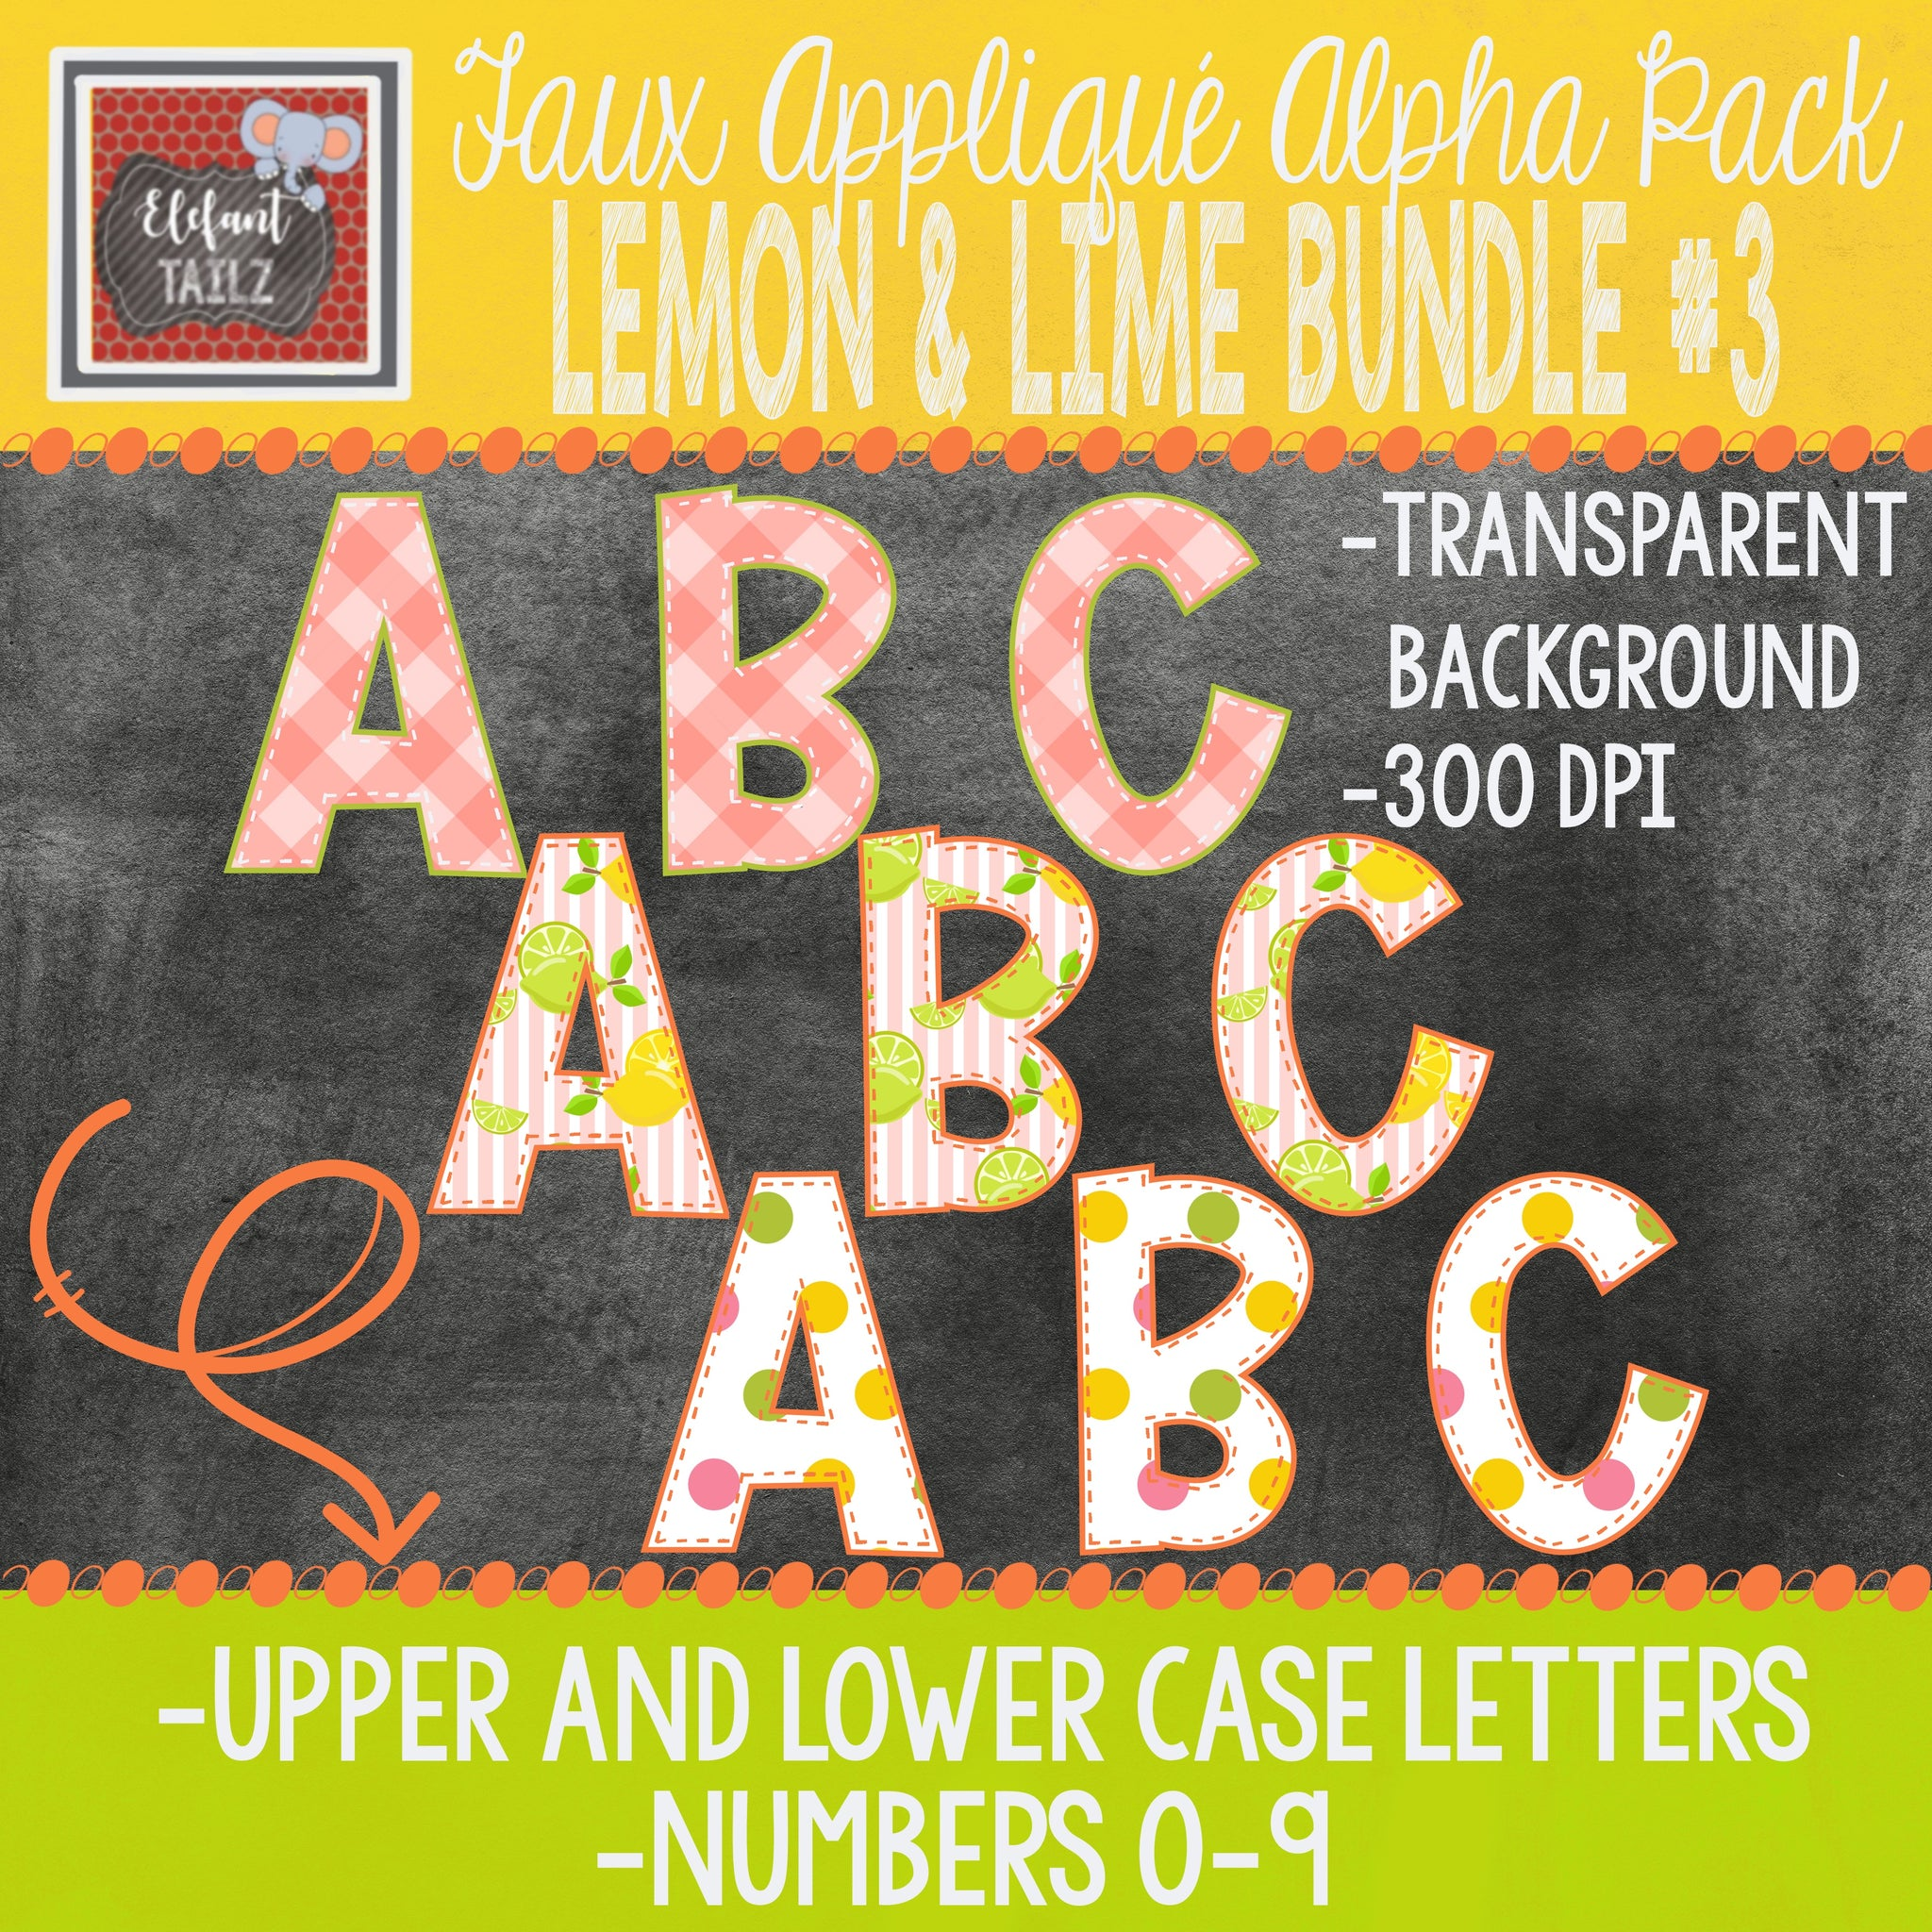 Alpha & Number Pack - Lemon & Lime BUNDLE #3